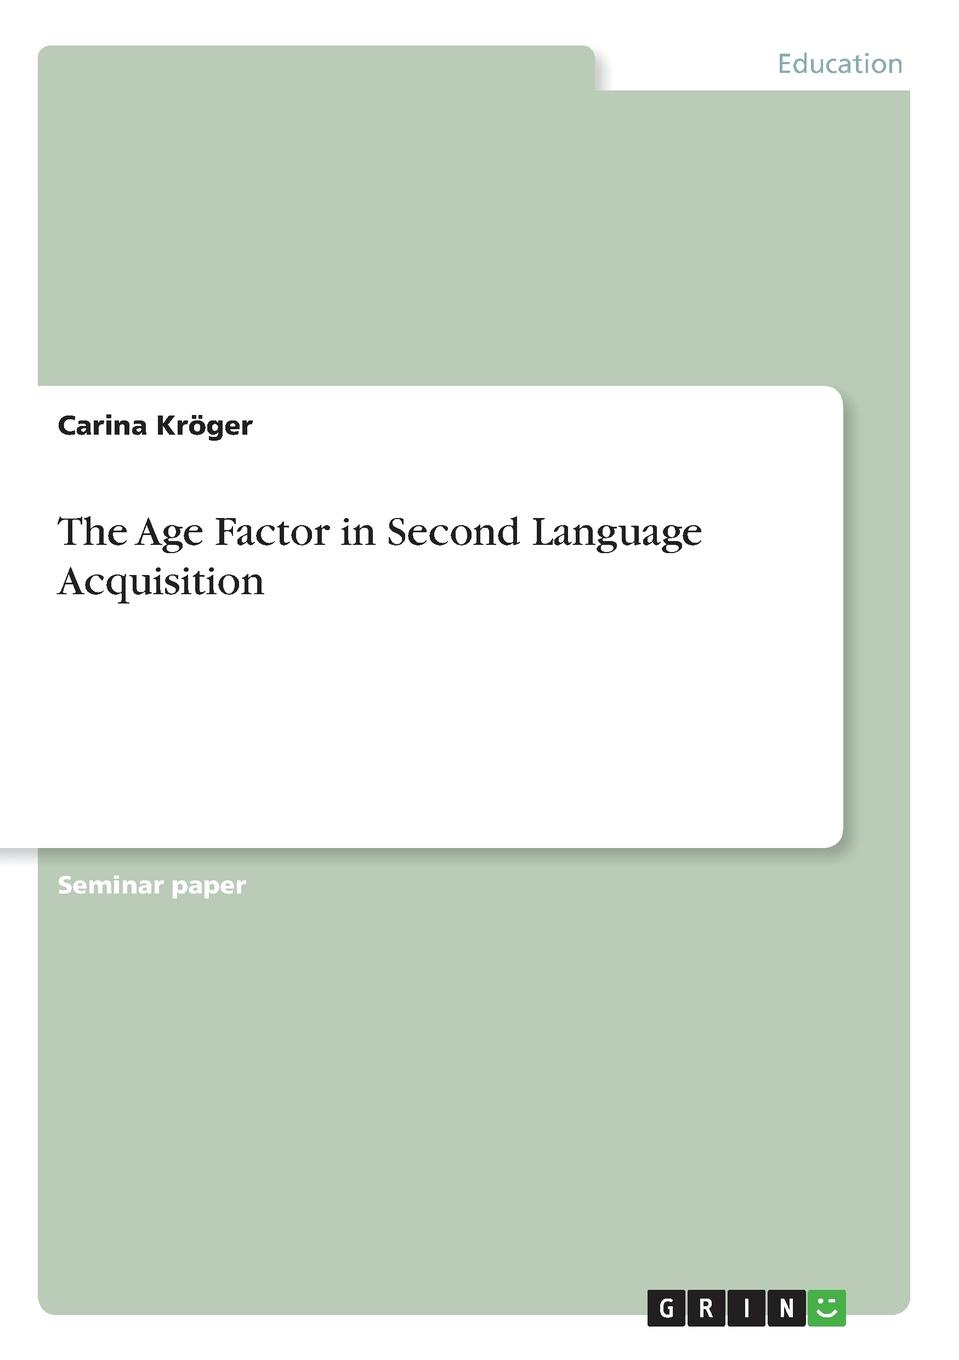 Carina Kröger The Age Factor in Second Language Acquisition kerstin köck language acquisition nativism vs contructivism